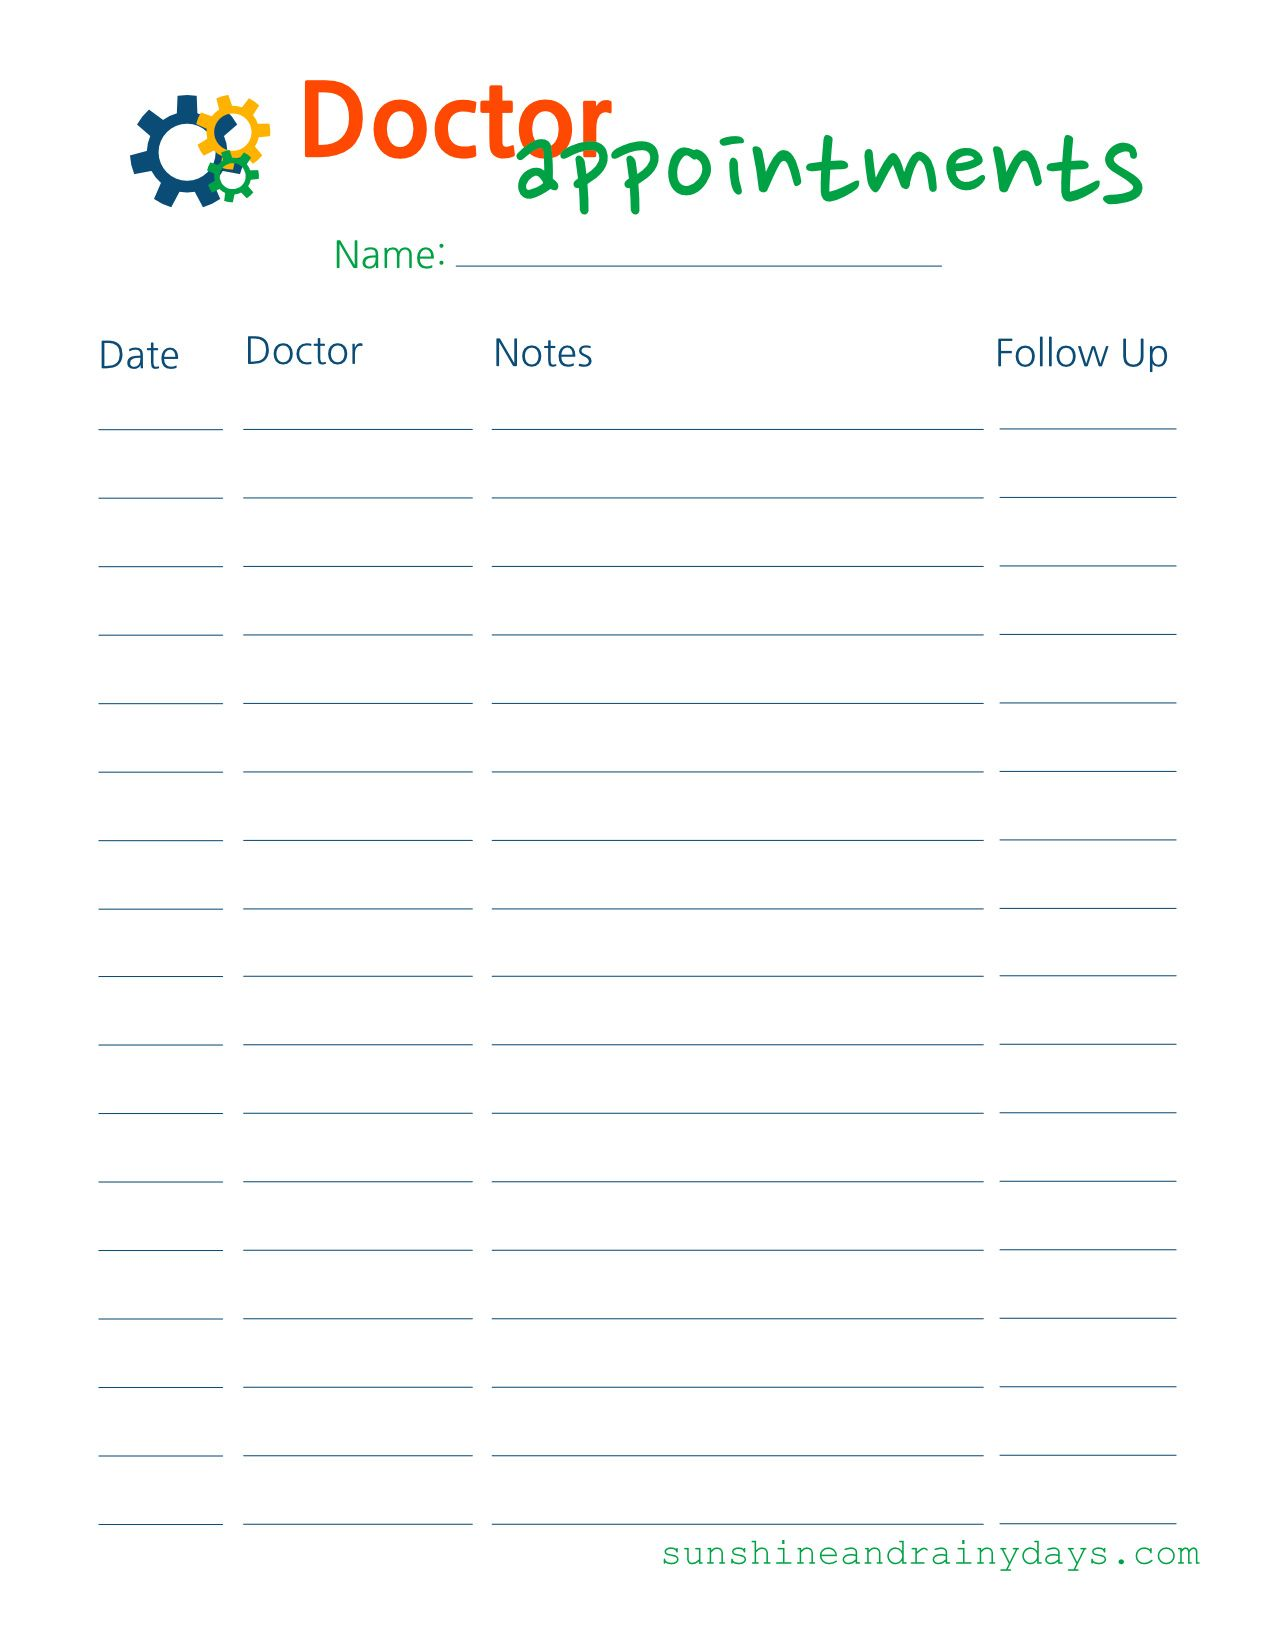 Doctor Appointments Doctor Appointment Wedding Guest List Template Doctor Visit